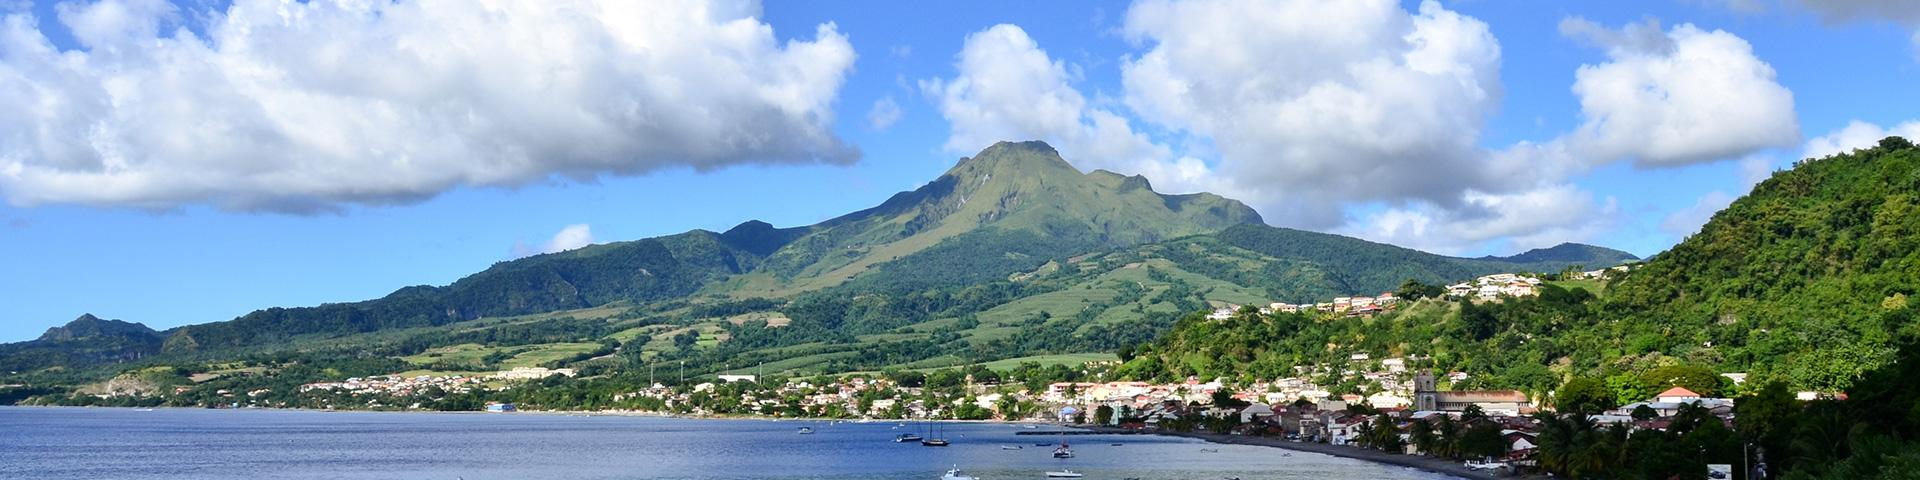 Baie de Saint Pierre, Martinique